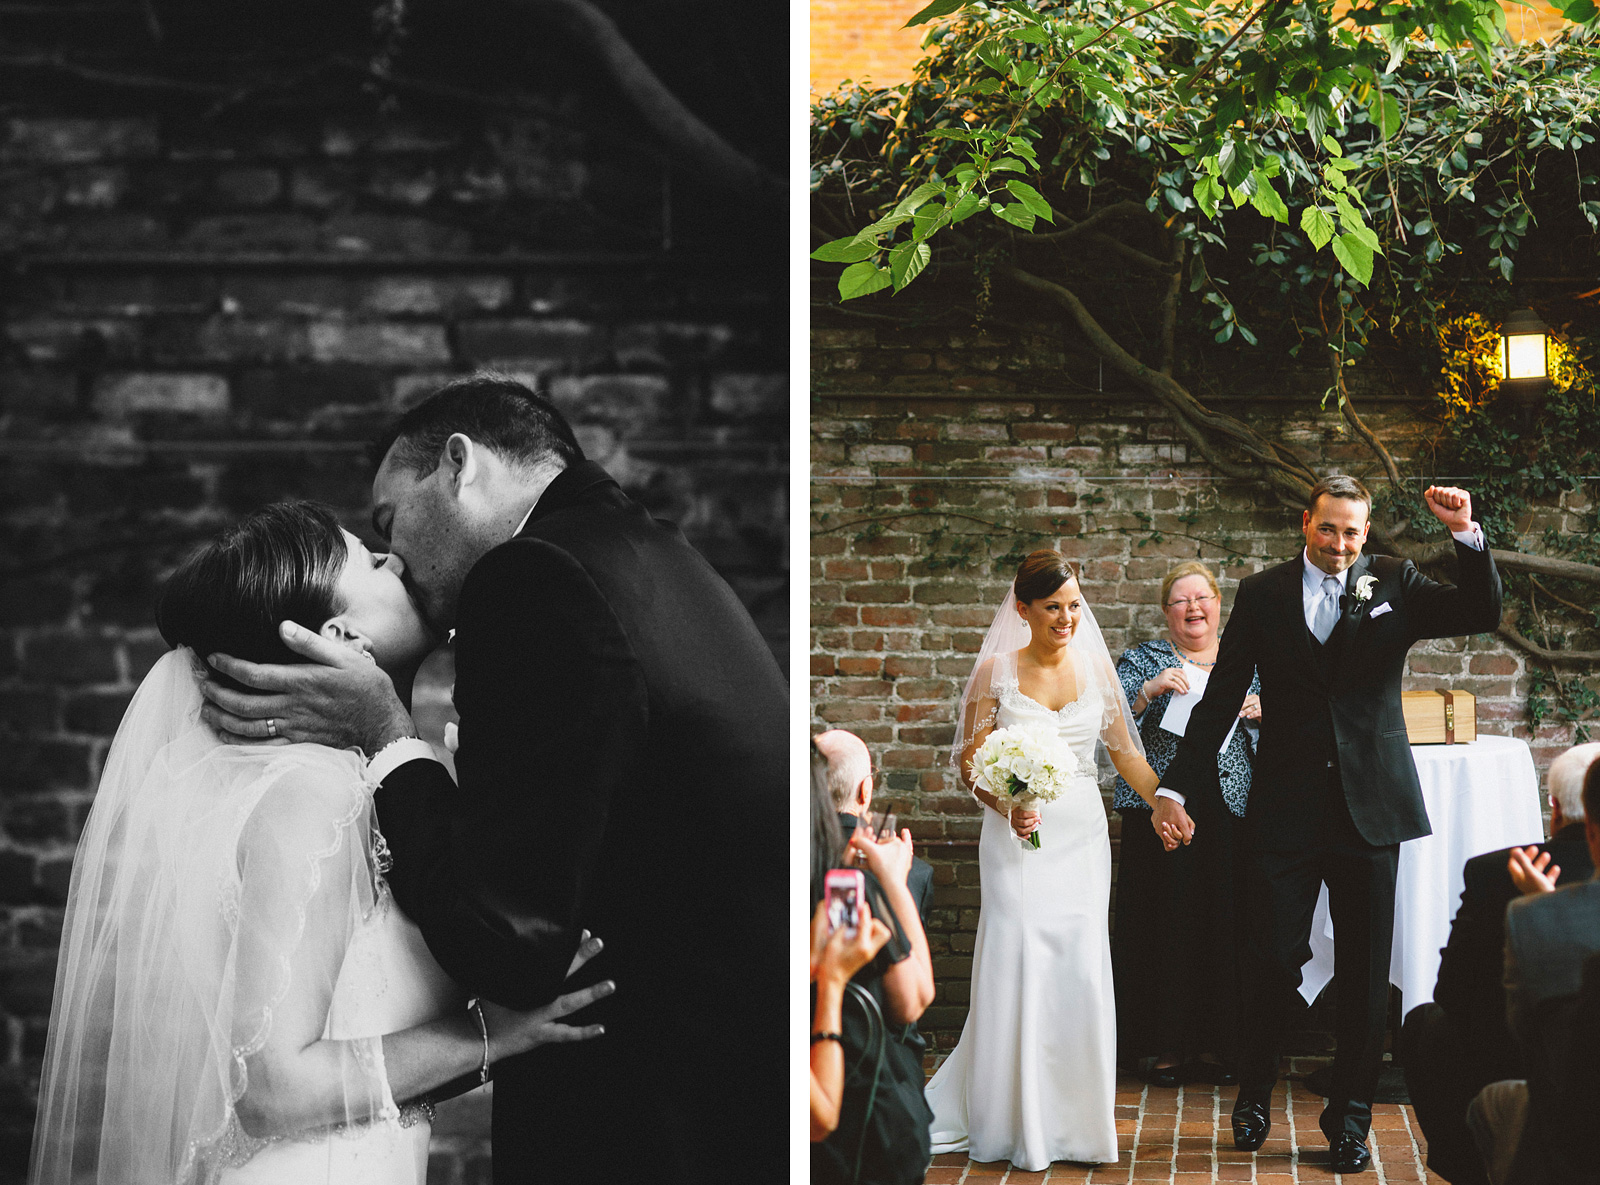 Brie and Groom's First Kiss | Sacramento Firehouse Wedding